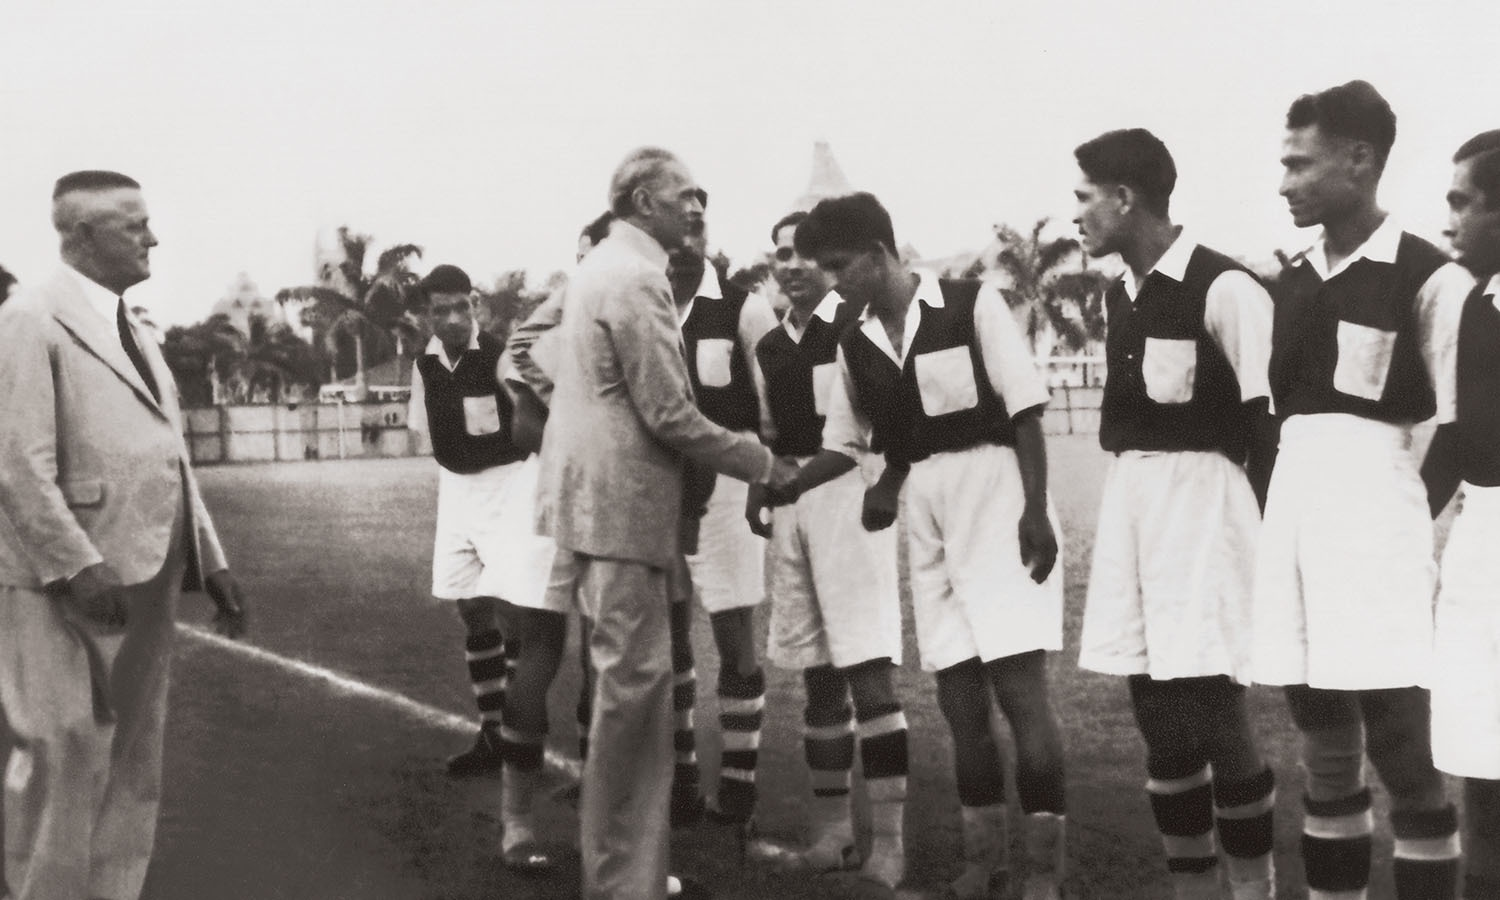 Quaid-i-Azam Mohammad Ali Jinnah always encouraged teamwork. He is seen here shaking hands with members of the Mohammadan Sporting Club in Calcutta, possibly in the late 1930s. Due to paucity of funds, the players could not afford shoes, and, therefore, played without them. Yet they managed to win several matches against British and Hindu teams. Khawaja Nazimuddin, Premier of Bengal in British India and Chief Minister of East Bengal post-partition, served as the Club's president from 1936 to 1940. | Photo: The Private Collection of Shahnaz Babar Khairuddin